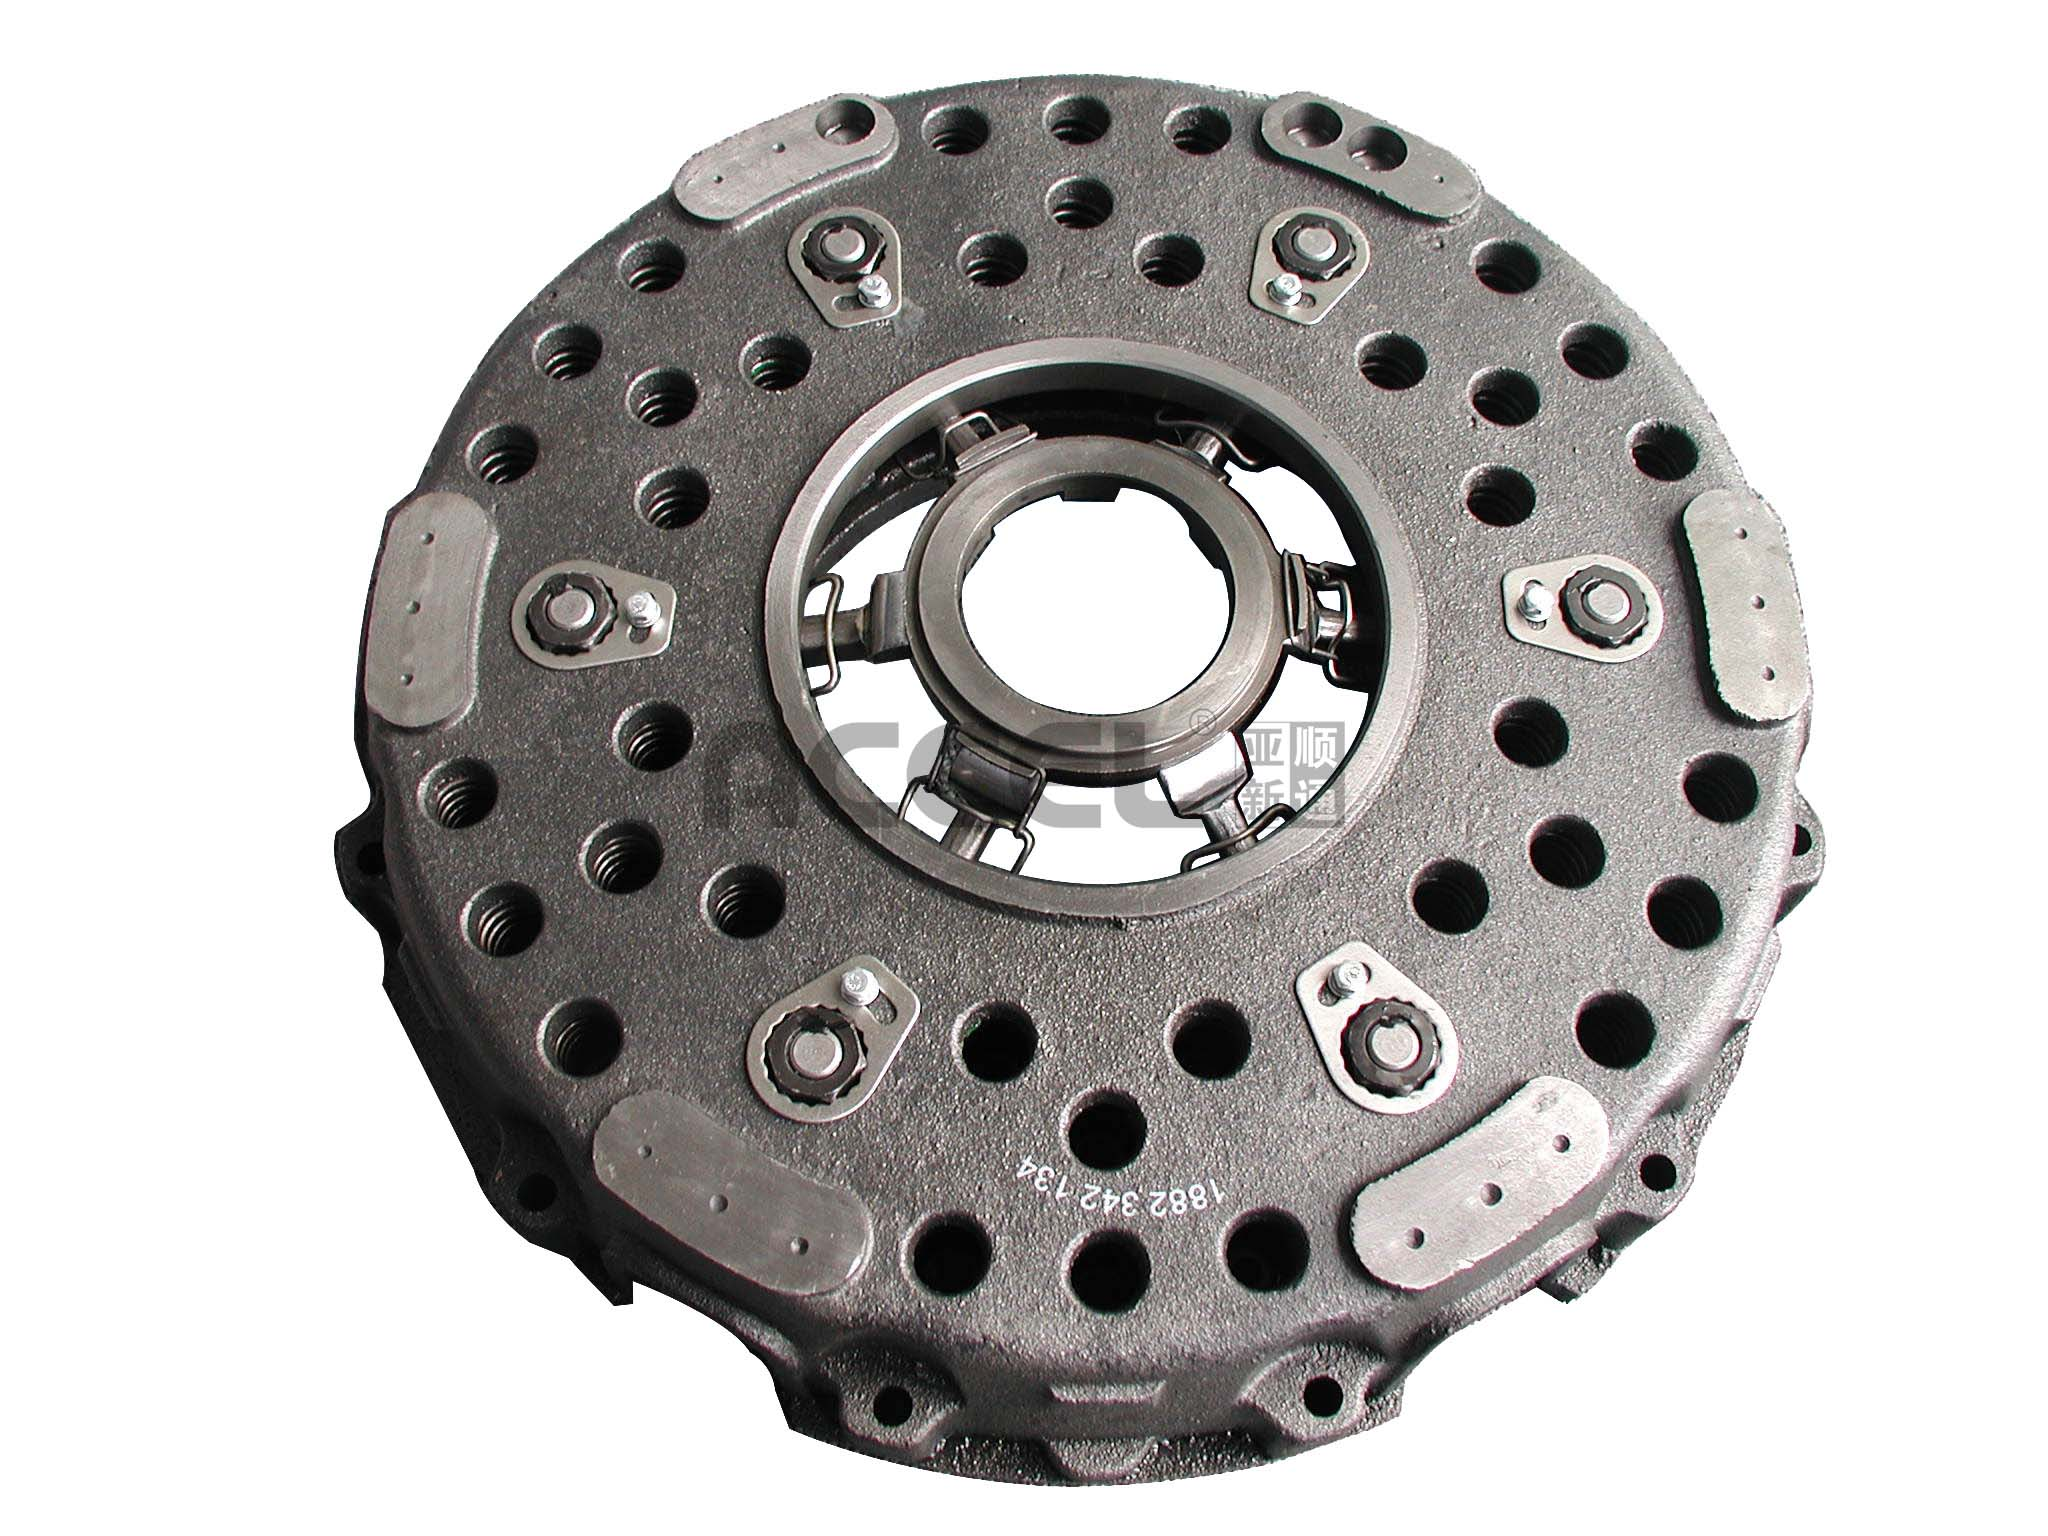 Clutch Cover/OE:003 250 9004/420*215*450/CMN-001/MAN/LY189/81.30305.0124/3600663